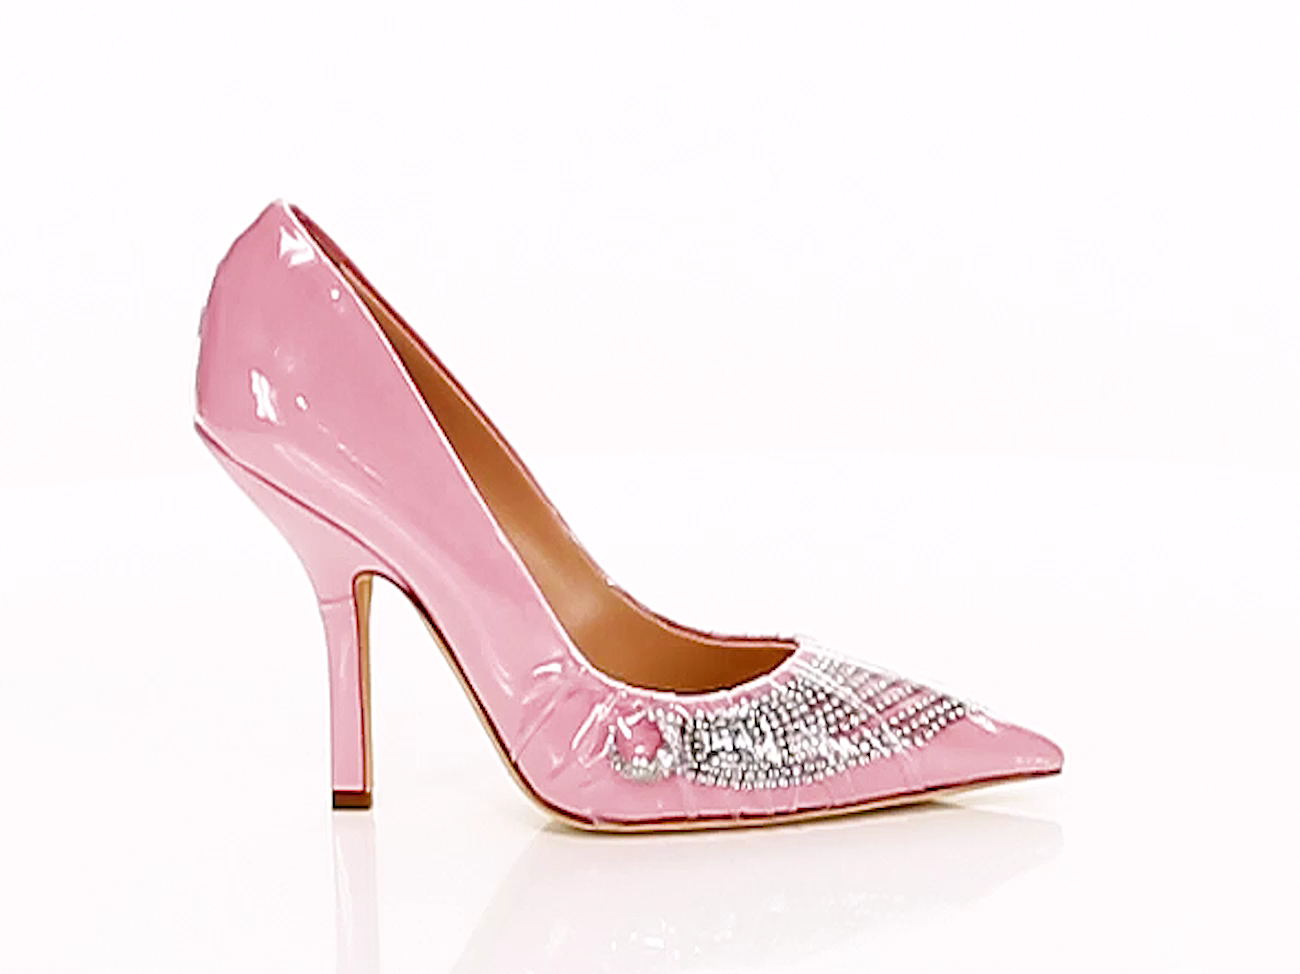 Iconic Crystal Embellished Cotton Pvc Pumps Midnight 00 Video Video Casual Shoes Women Heels Christian Louboutin Heels